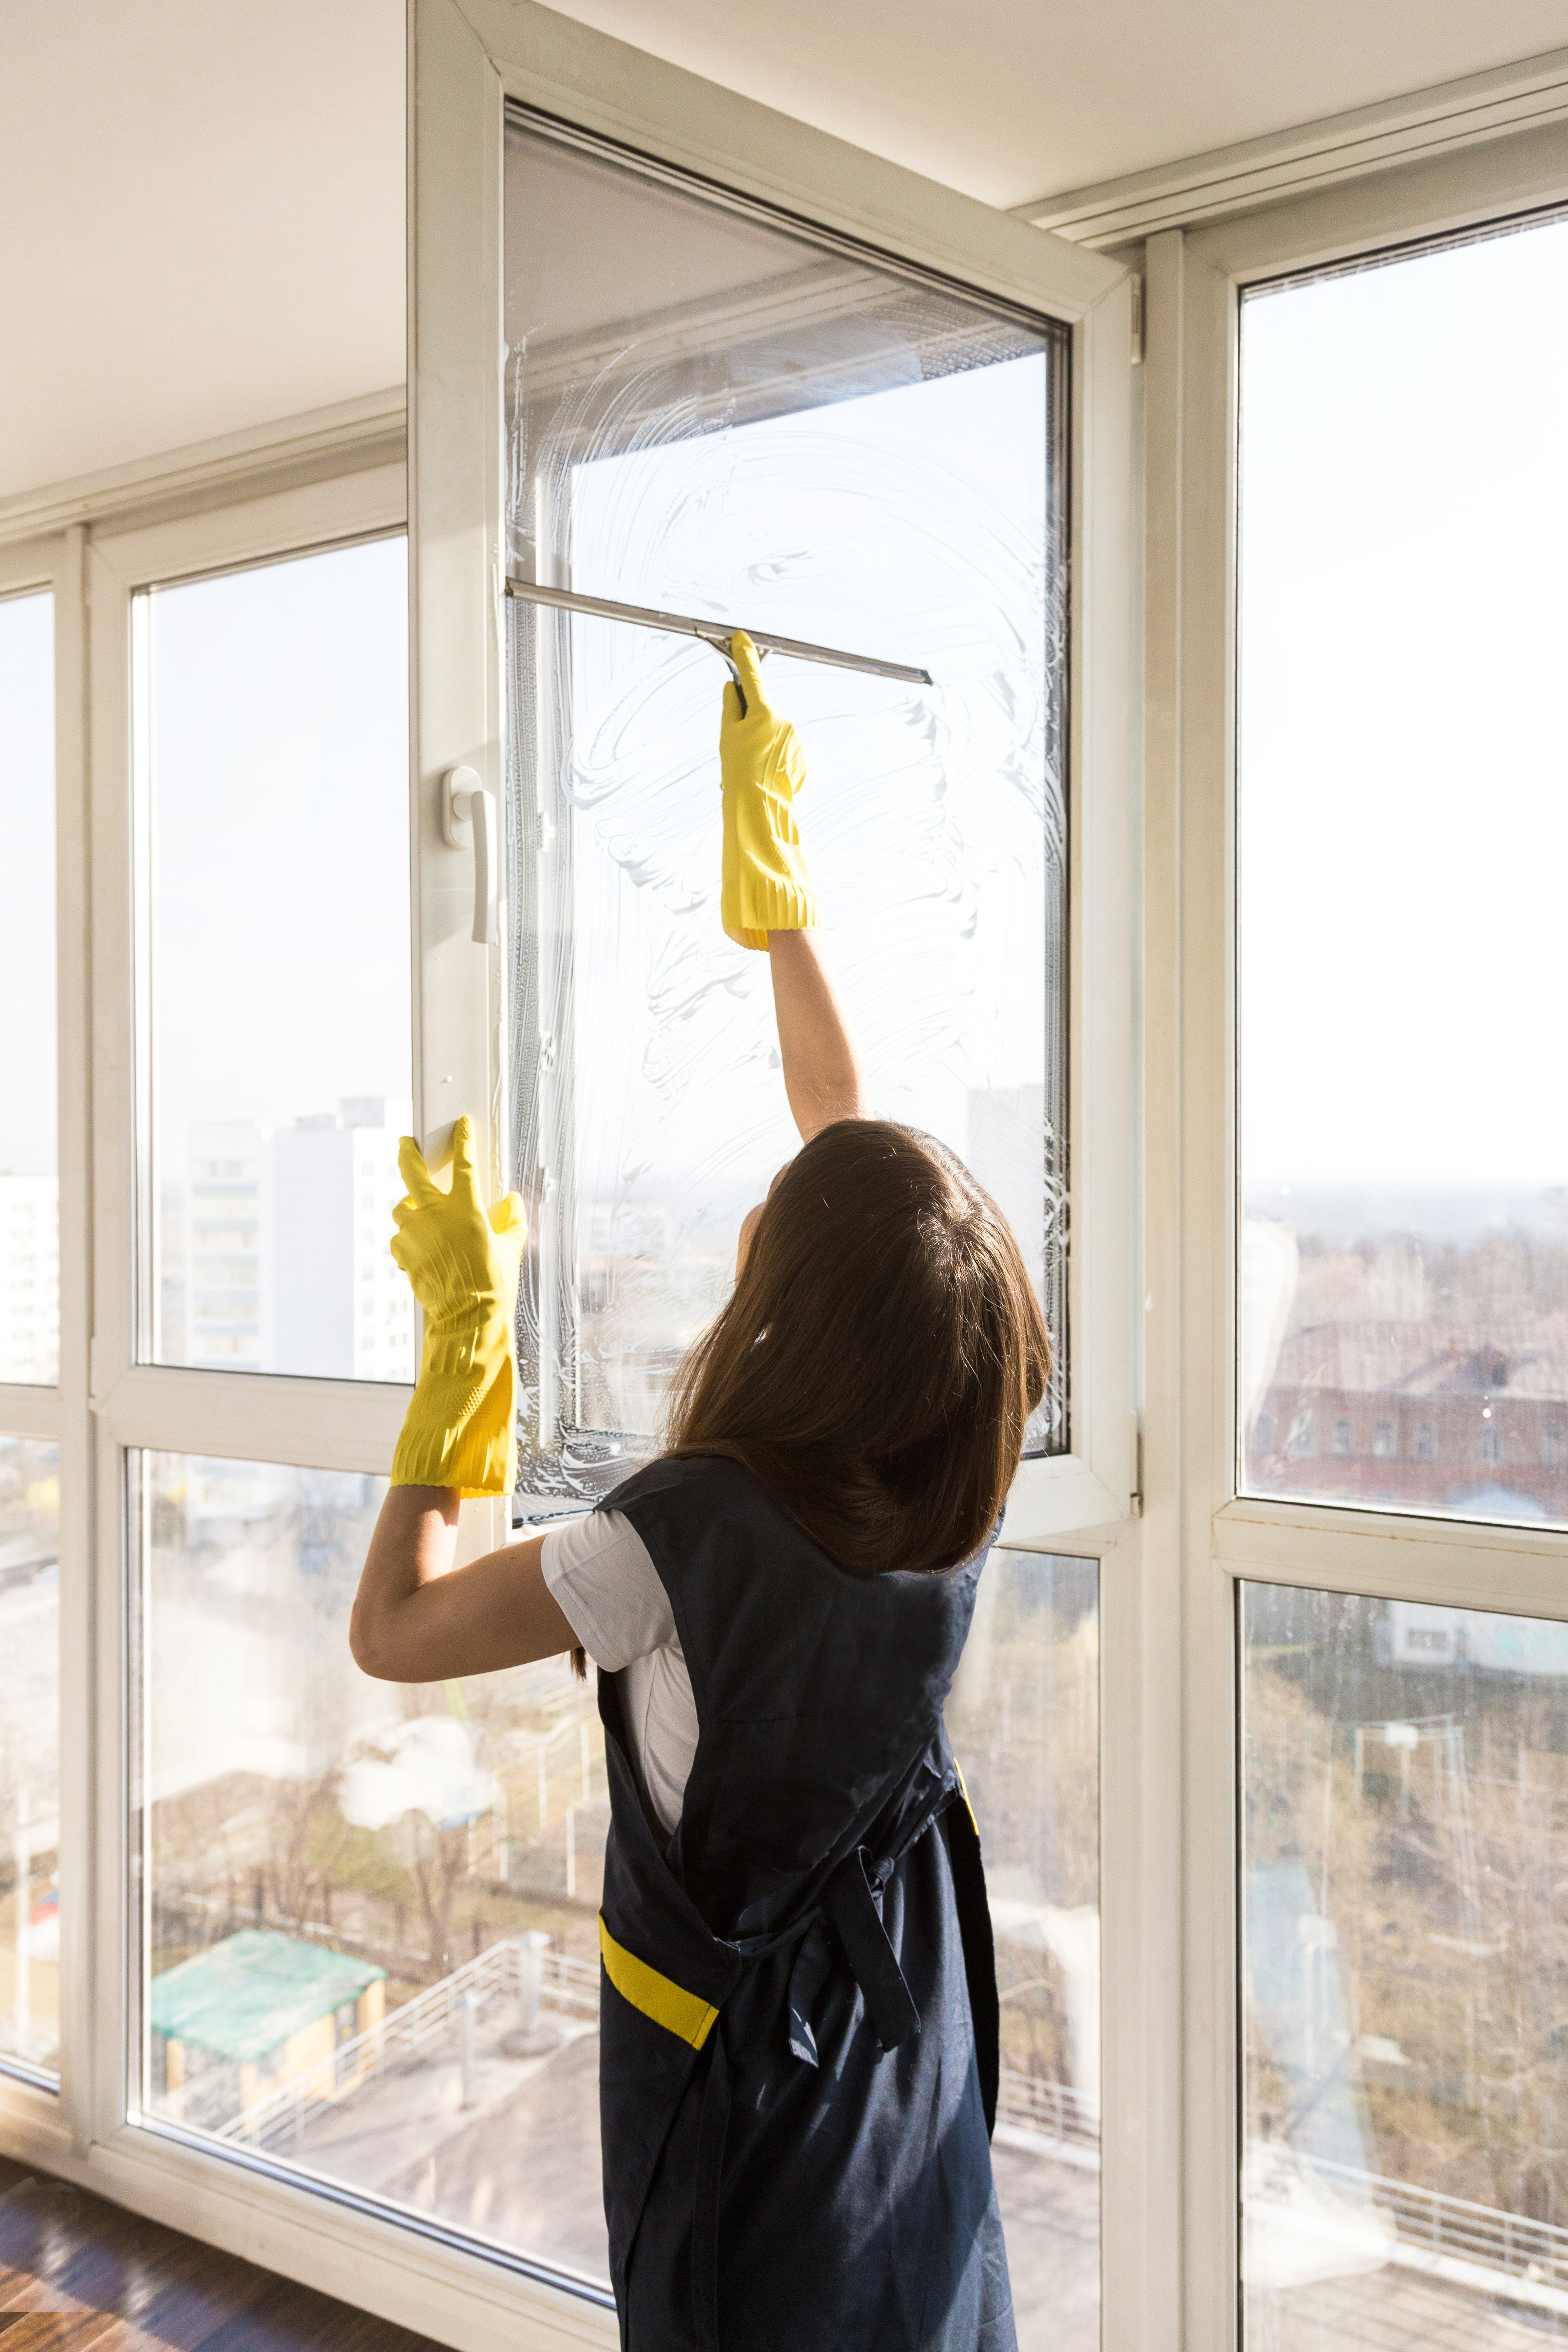 Close-up of a woman in uniform and yellow gloves washes a windows with window scraper. Professional home cleaning.